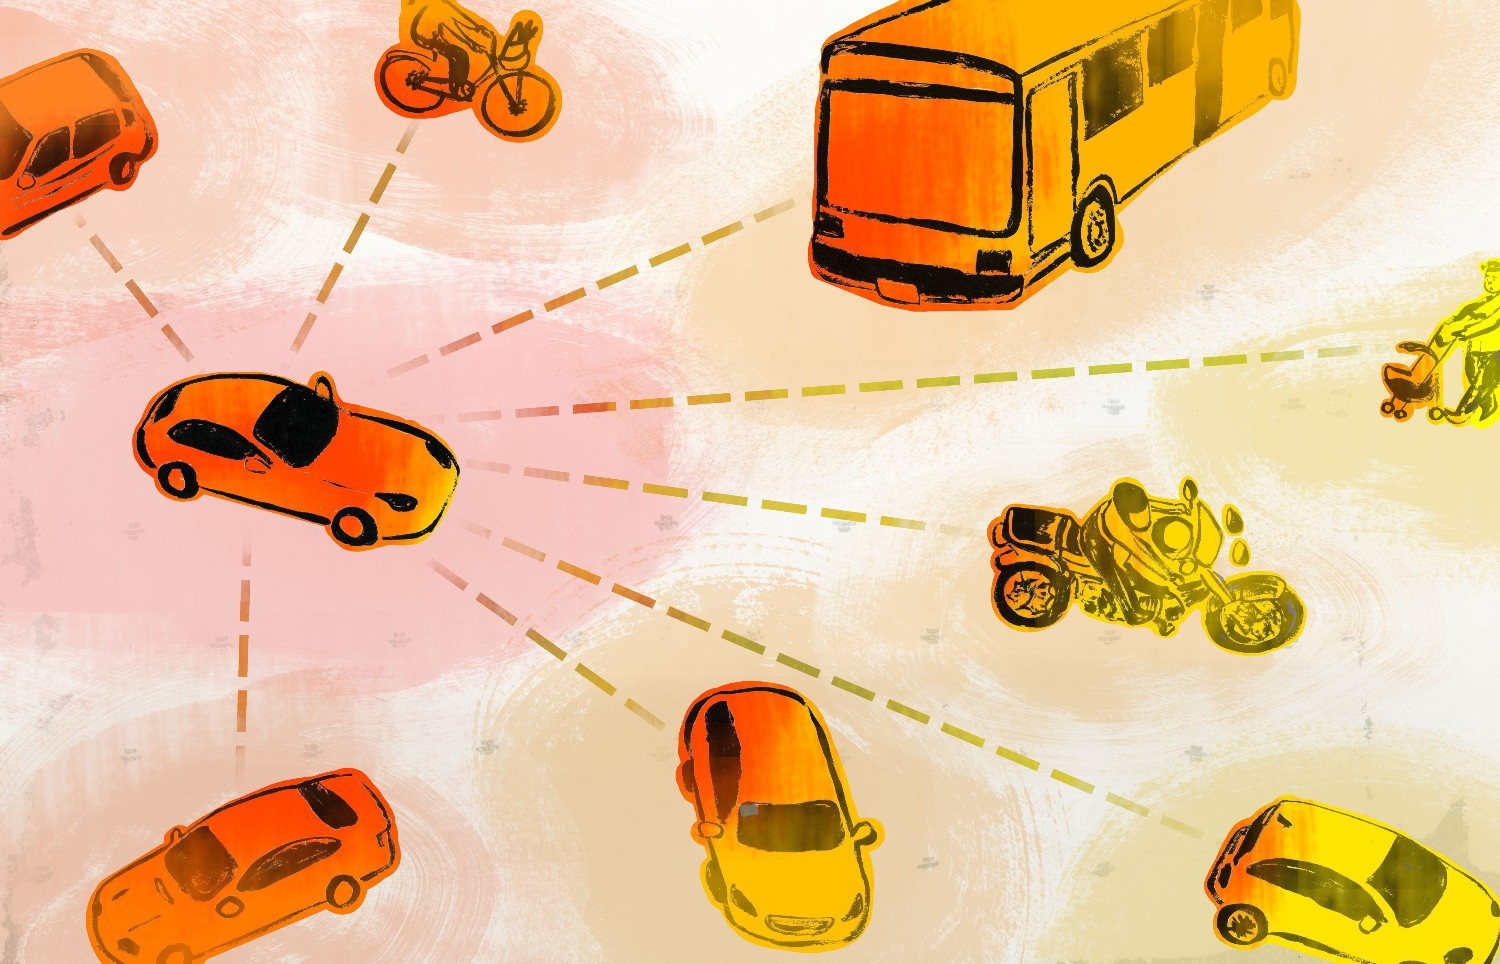 Designing the autonomous vehicle of the future requires an array of the best technical talent available: automobile and software engineers, experts on sensor technology and artificial intelligence, computer scientists, production specialists and many others © Nissan Motor Co., Ltd.